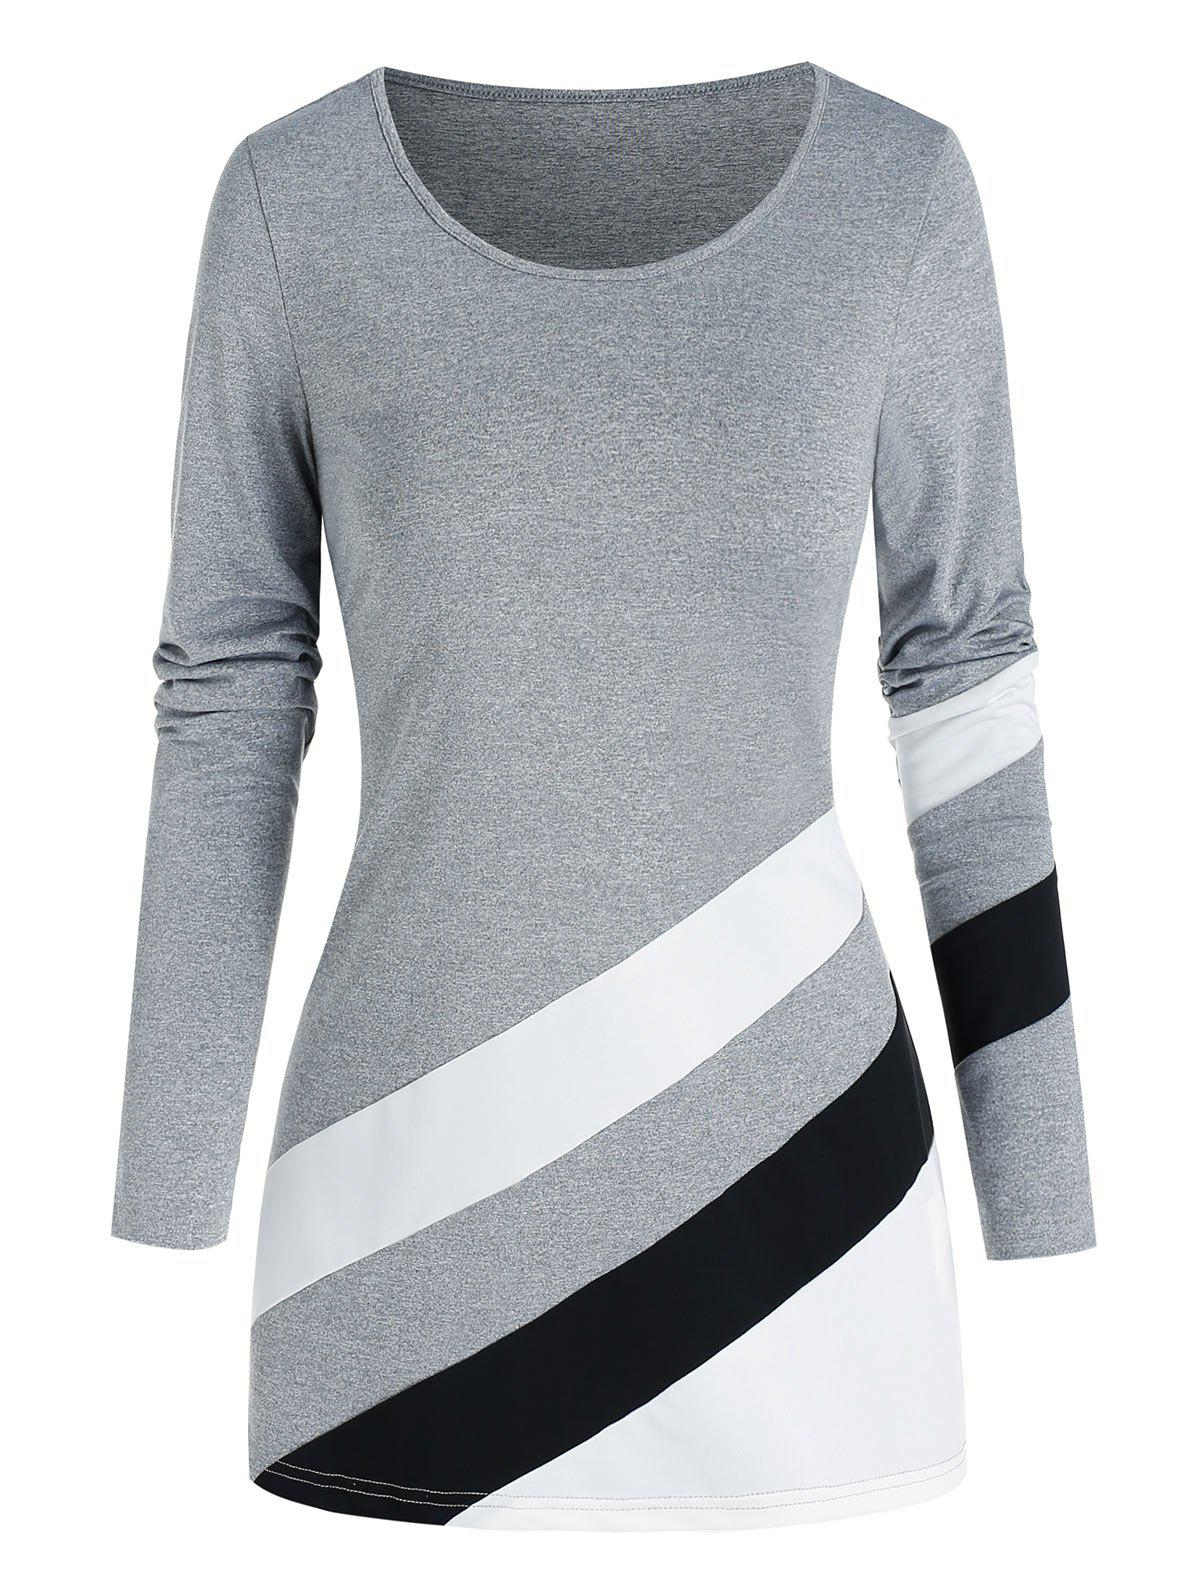 Oblique Striped Pattern Colorblock T Shirt - LIGHT GRAY 3XL